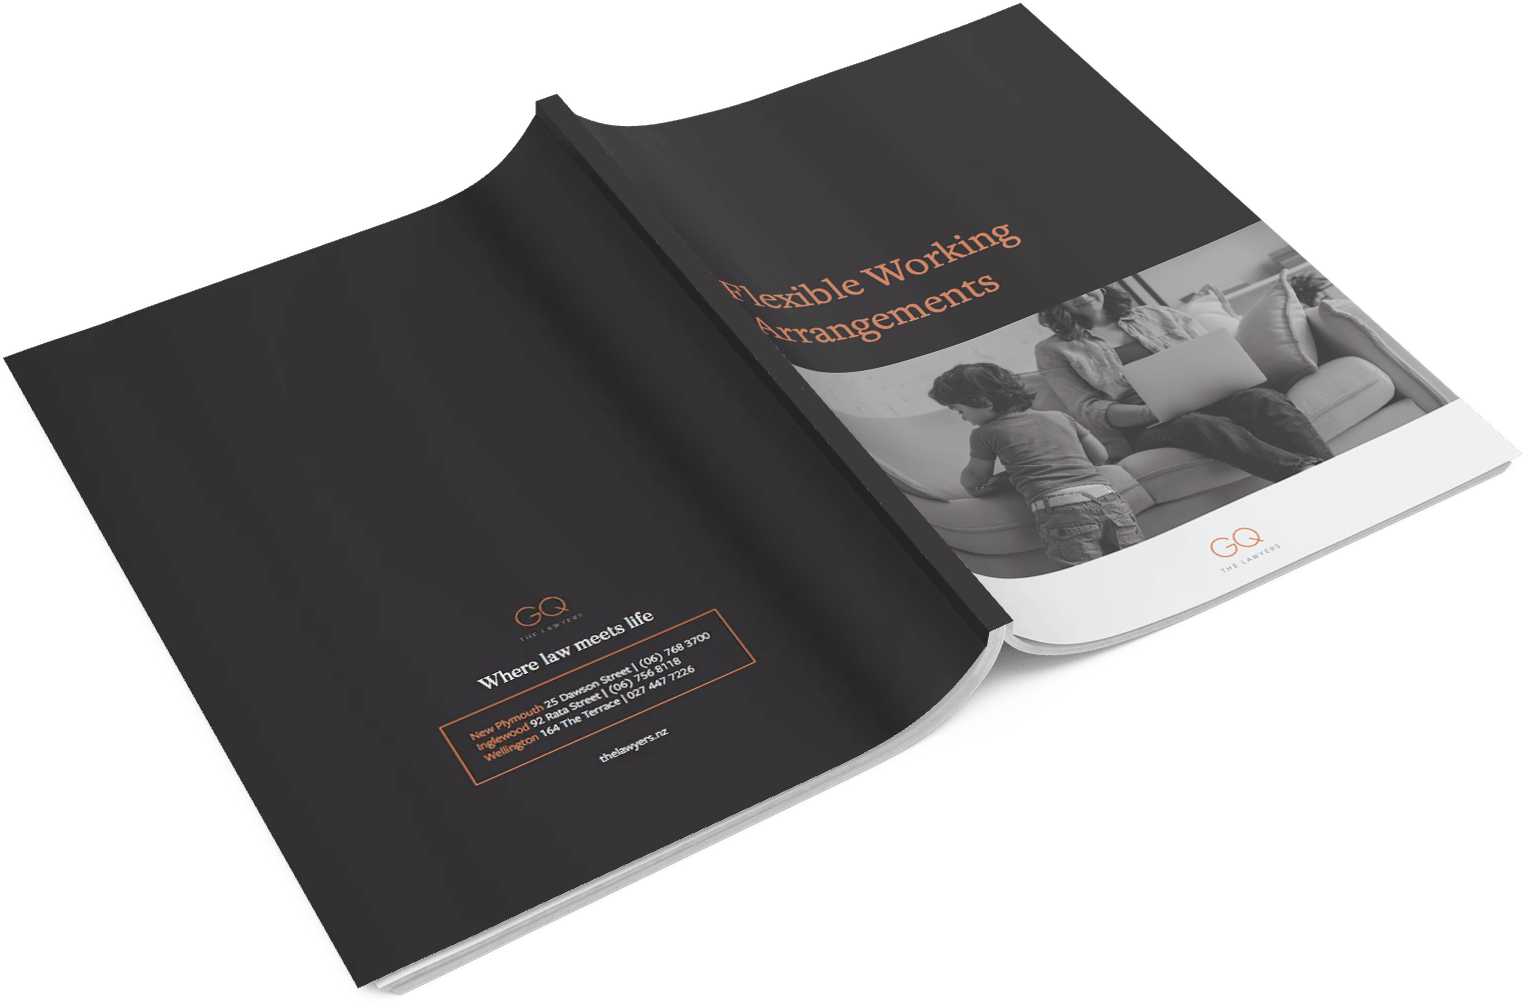 Download this booklet to understand more about Flexible Working Arrangements